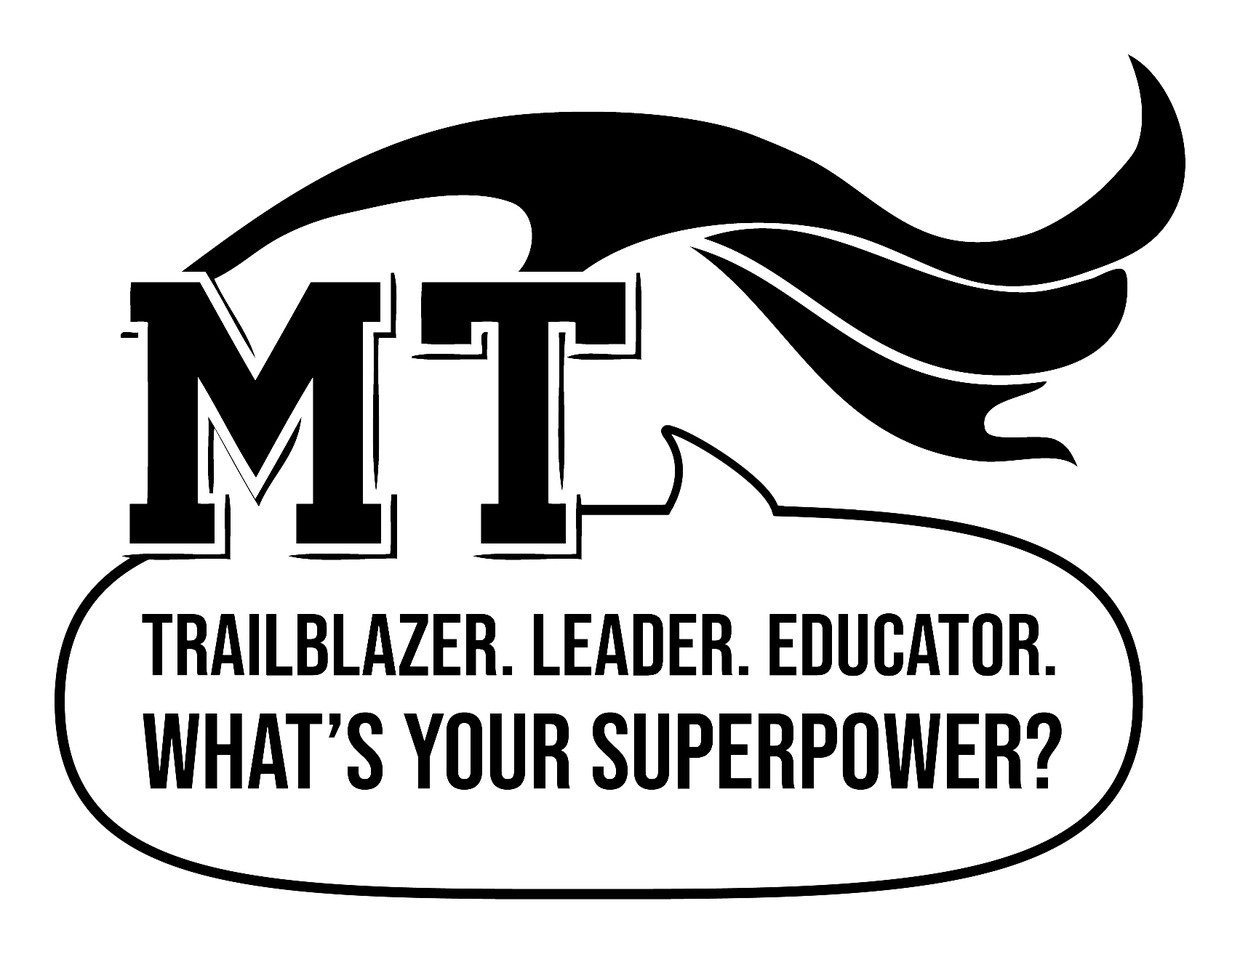 MT with a cape. Text says Trailblazer. Leader. Educator. What's your superpower?